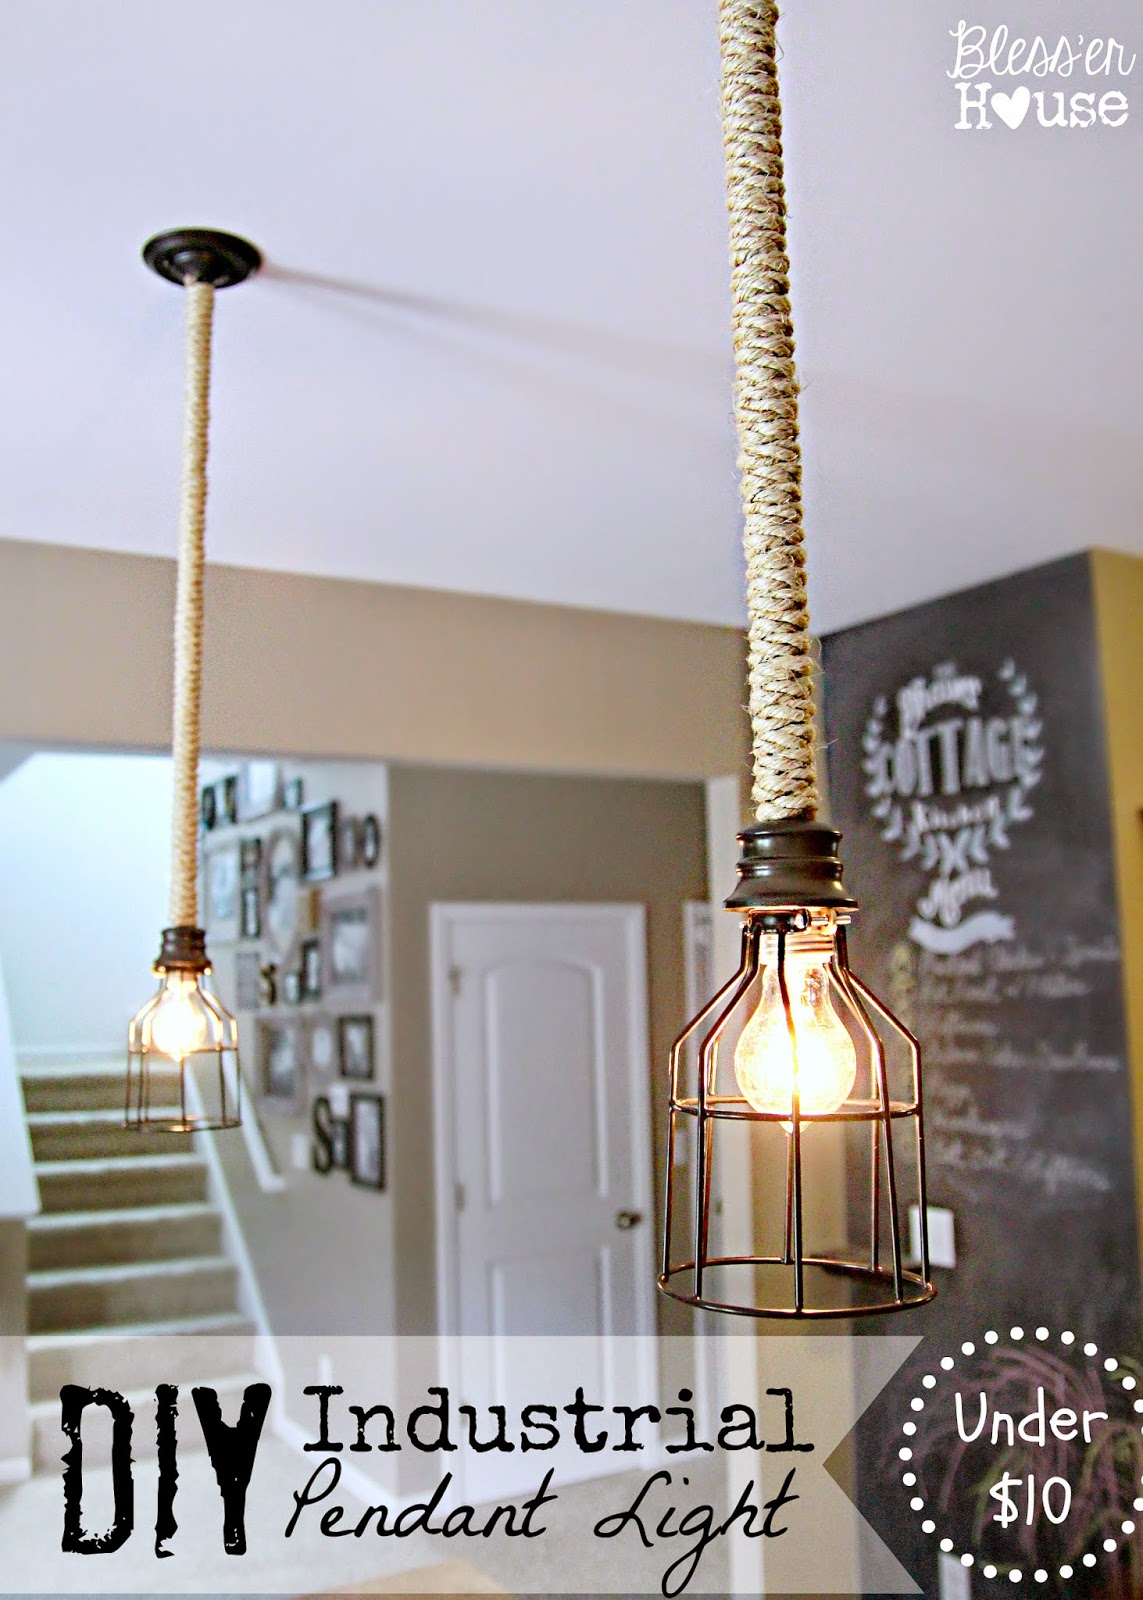 Design Industrial Light Fixtures diy industrial pendant light for under 10 blesser house house